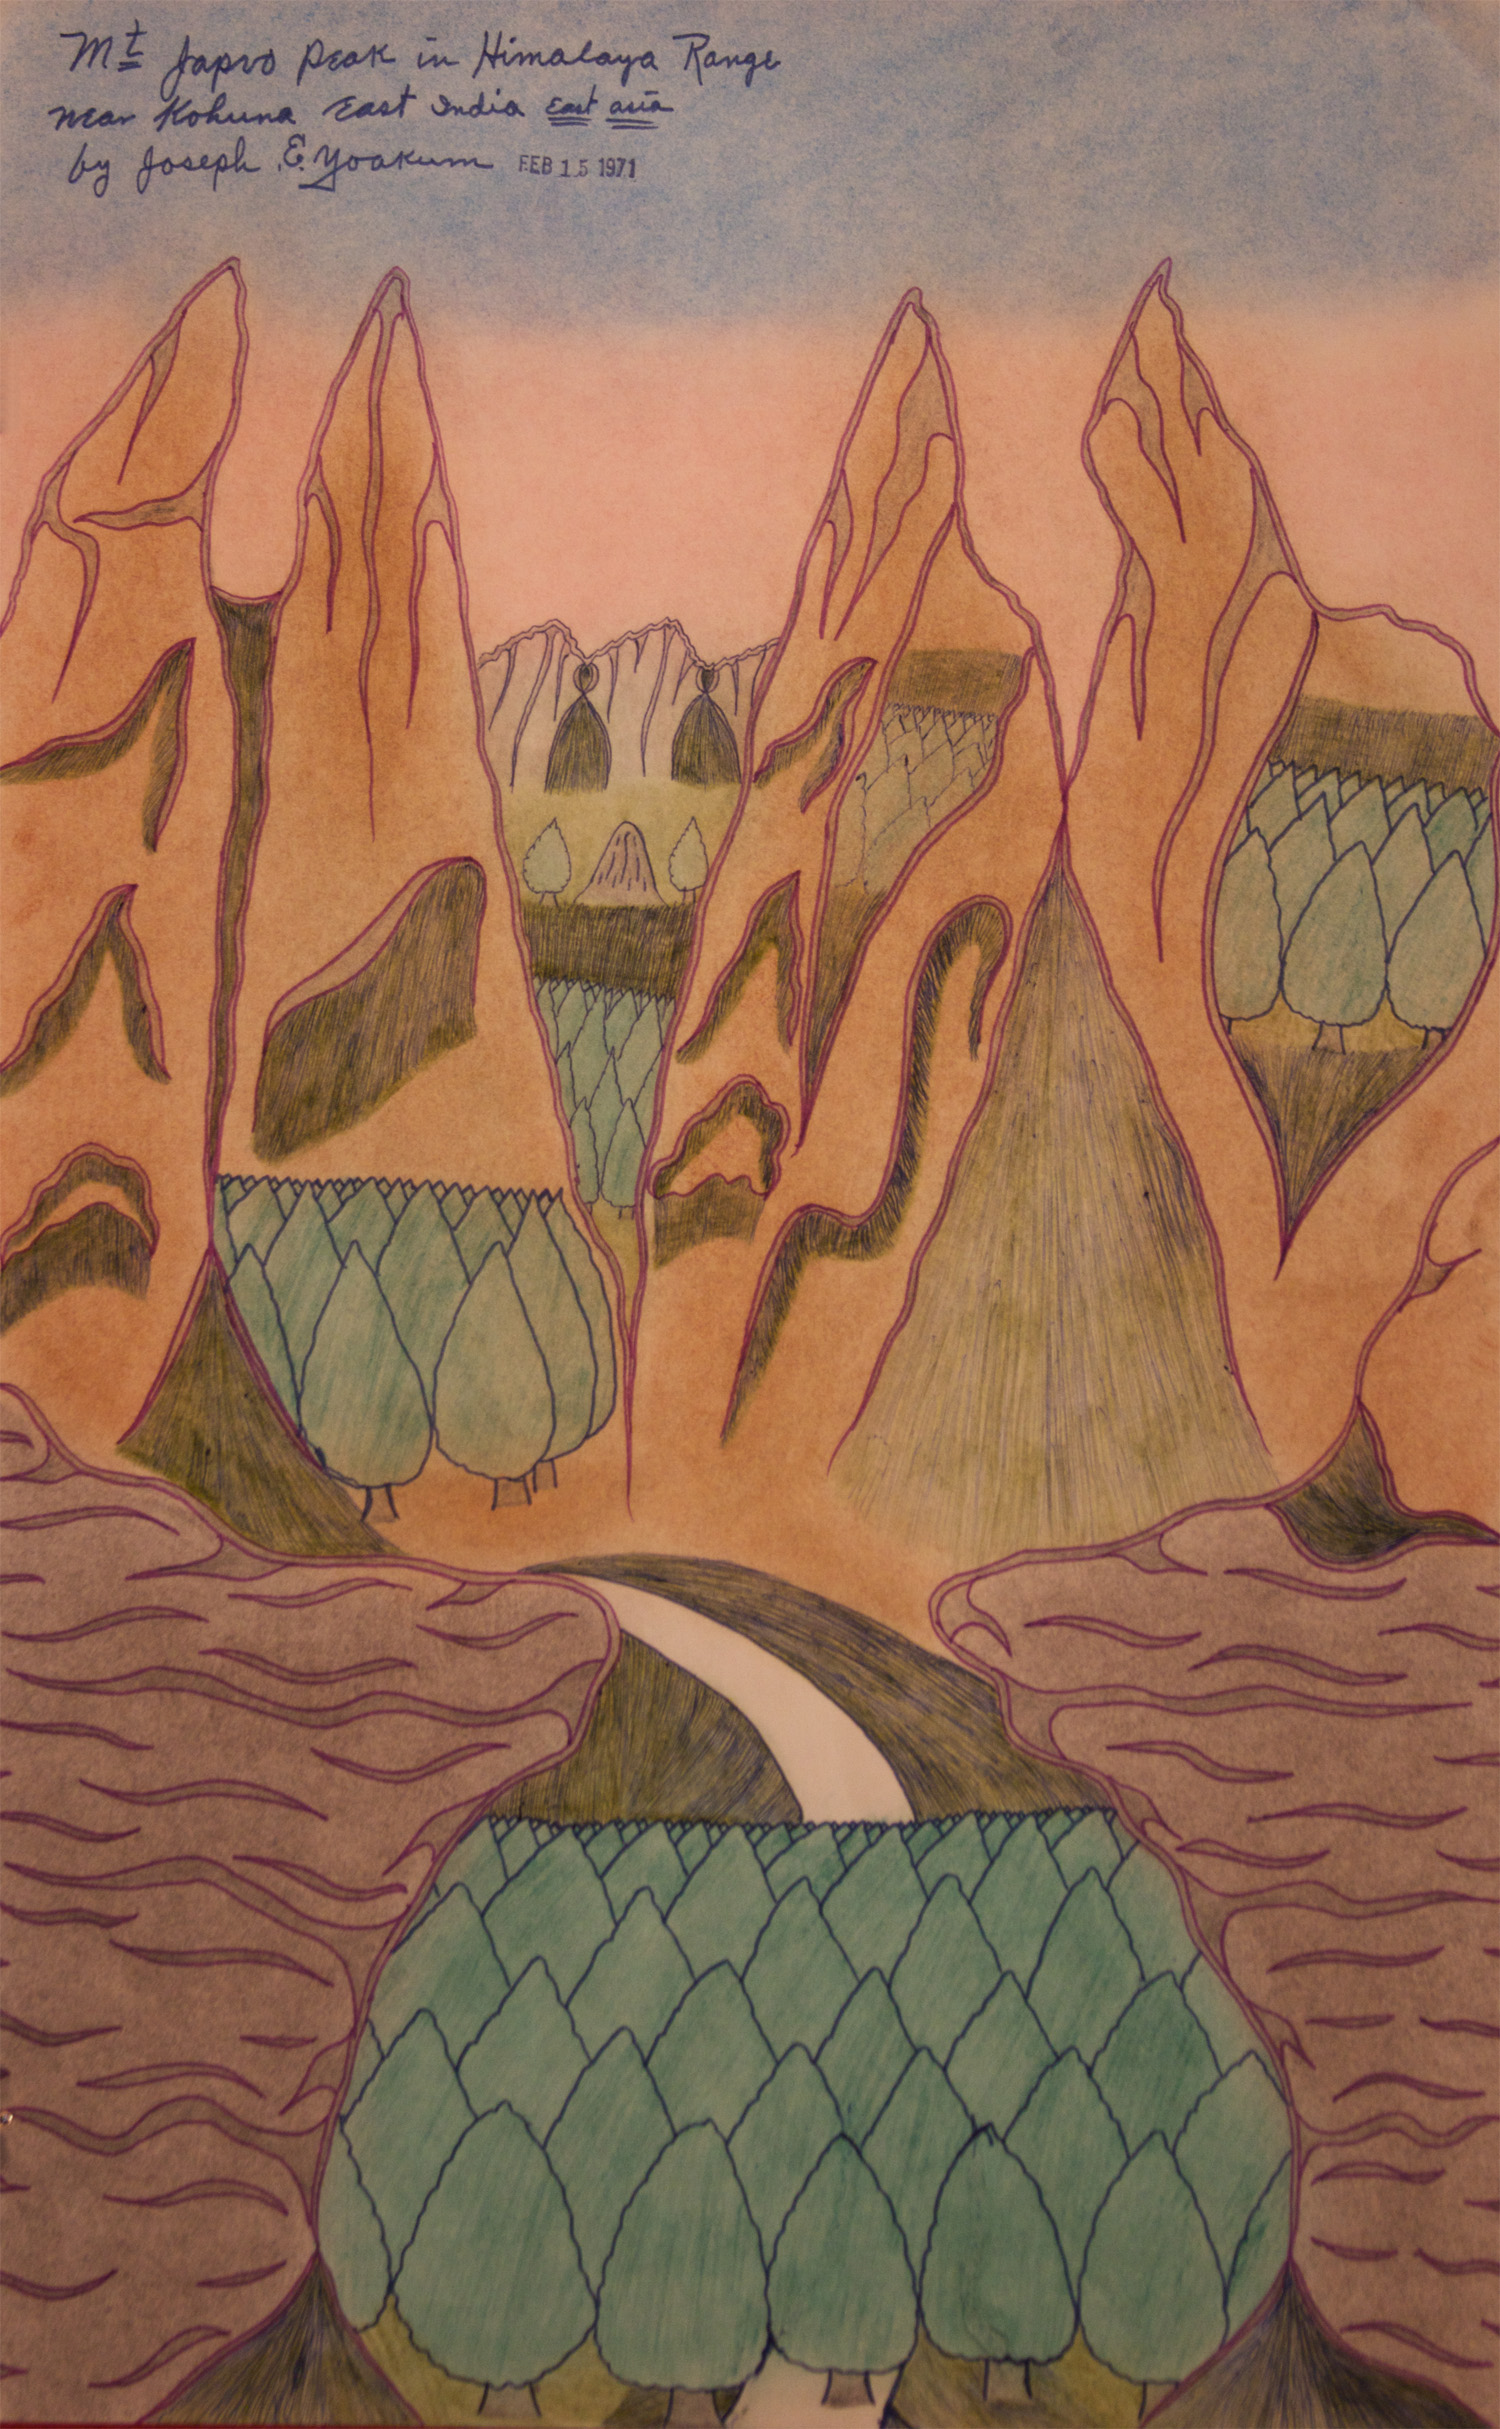 Joseph E. Yoakum (American, 1886-1972).  Mt. Japvo peak in Himalaya Range , February 5, 1971. Colored pencil on paper, 19 x 11.875 in.Intuit: The Center for Intuitive and Outsider Art, Gift of Martha Griffin, 2014.5.2